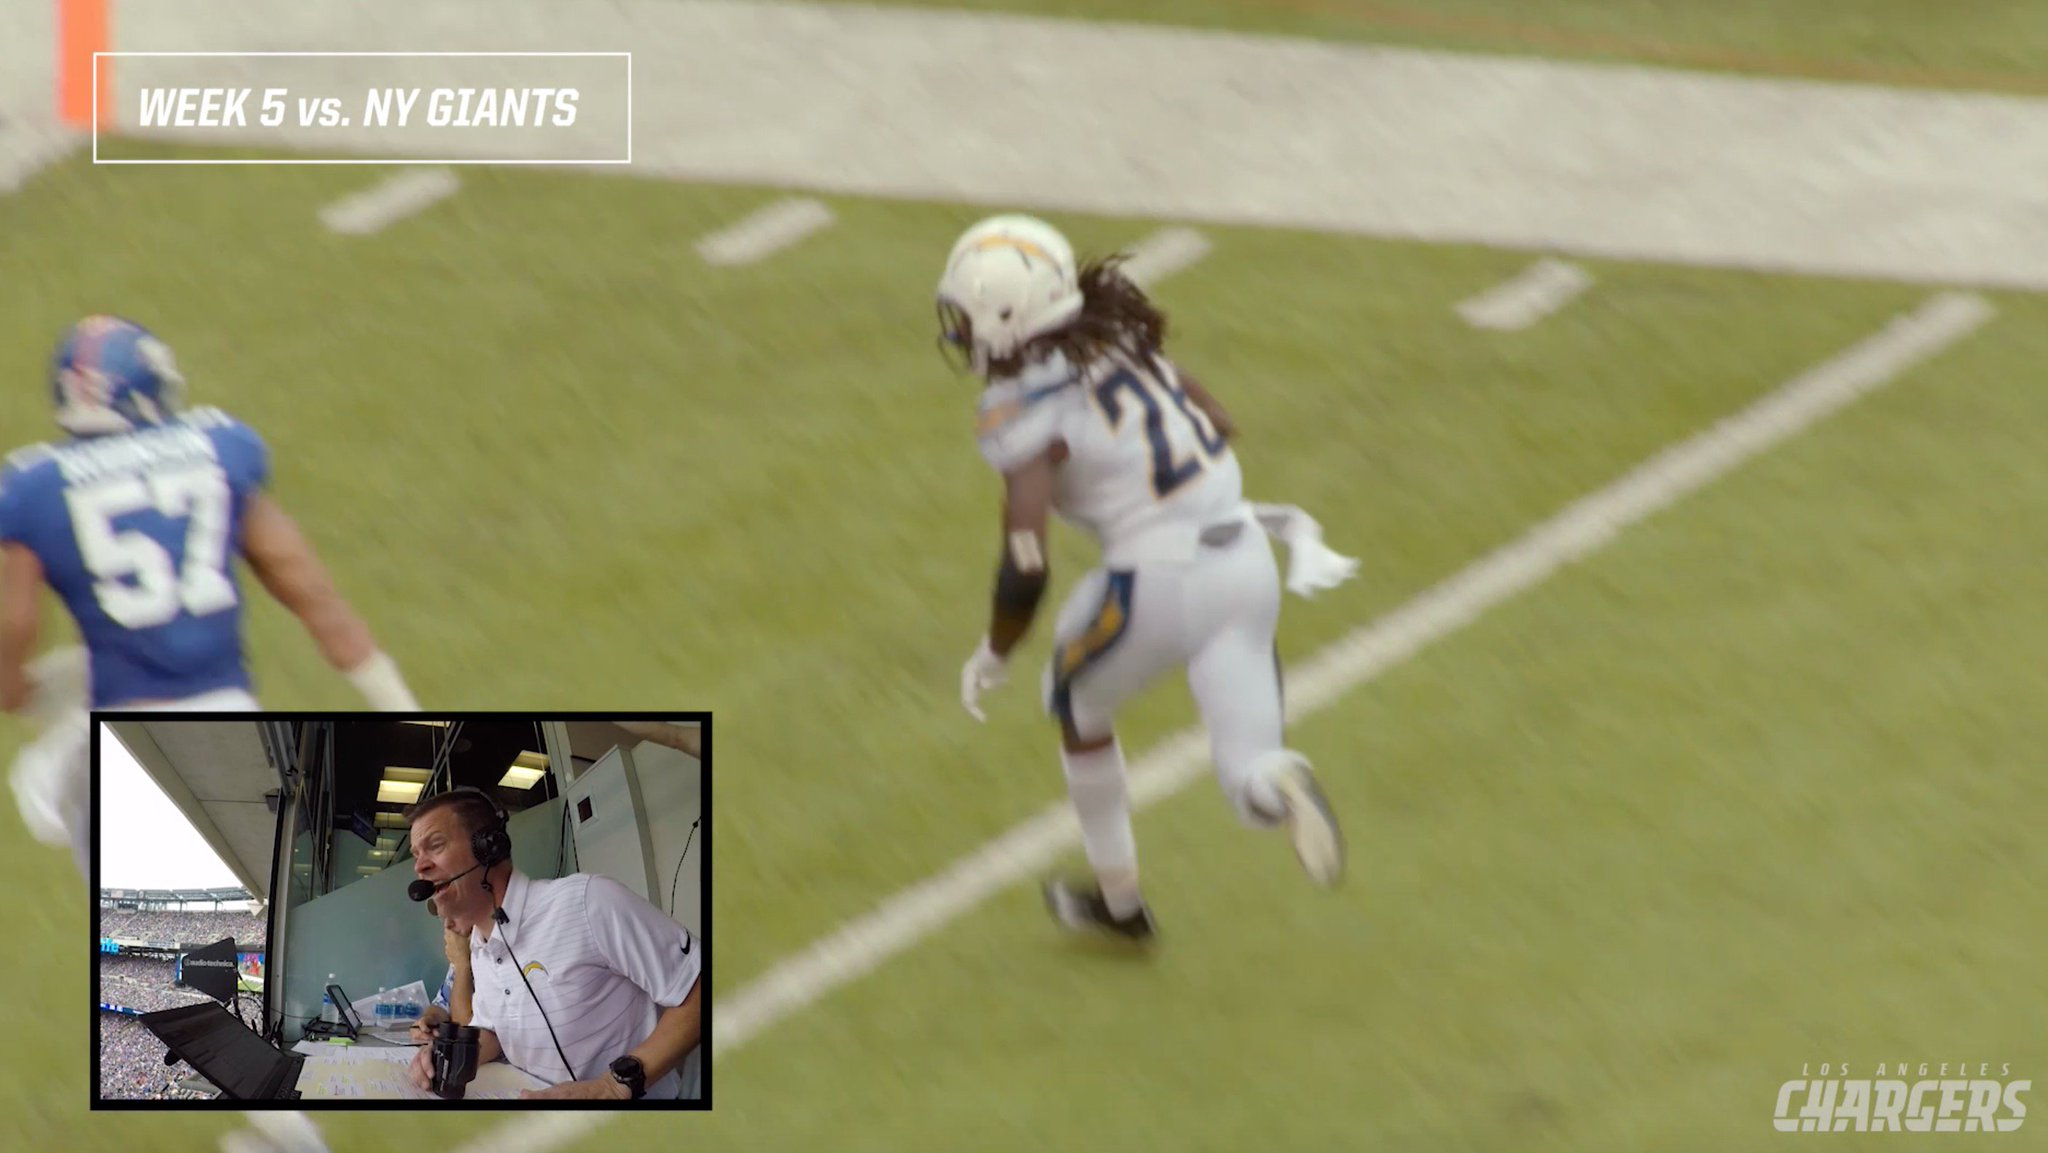 Check out the best radio calls from some of the biggest moments throughout the season. https://t.co/WCHBO0qMQl